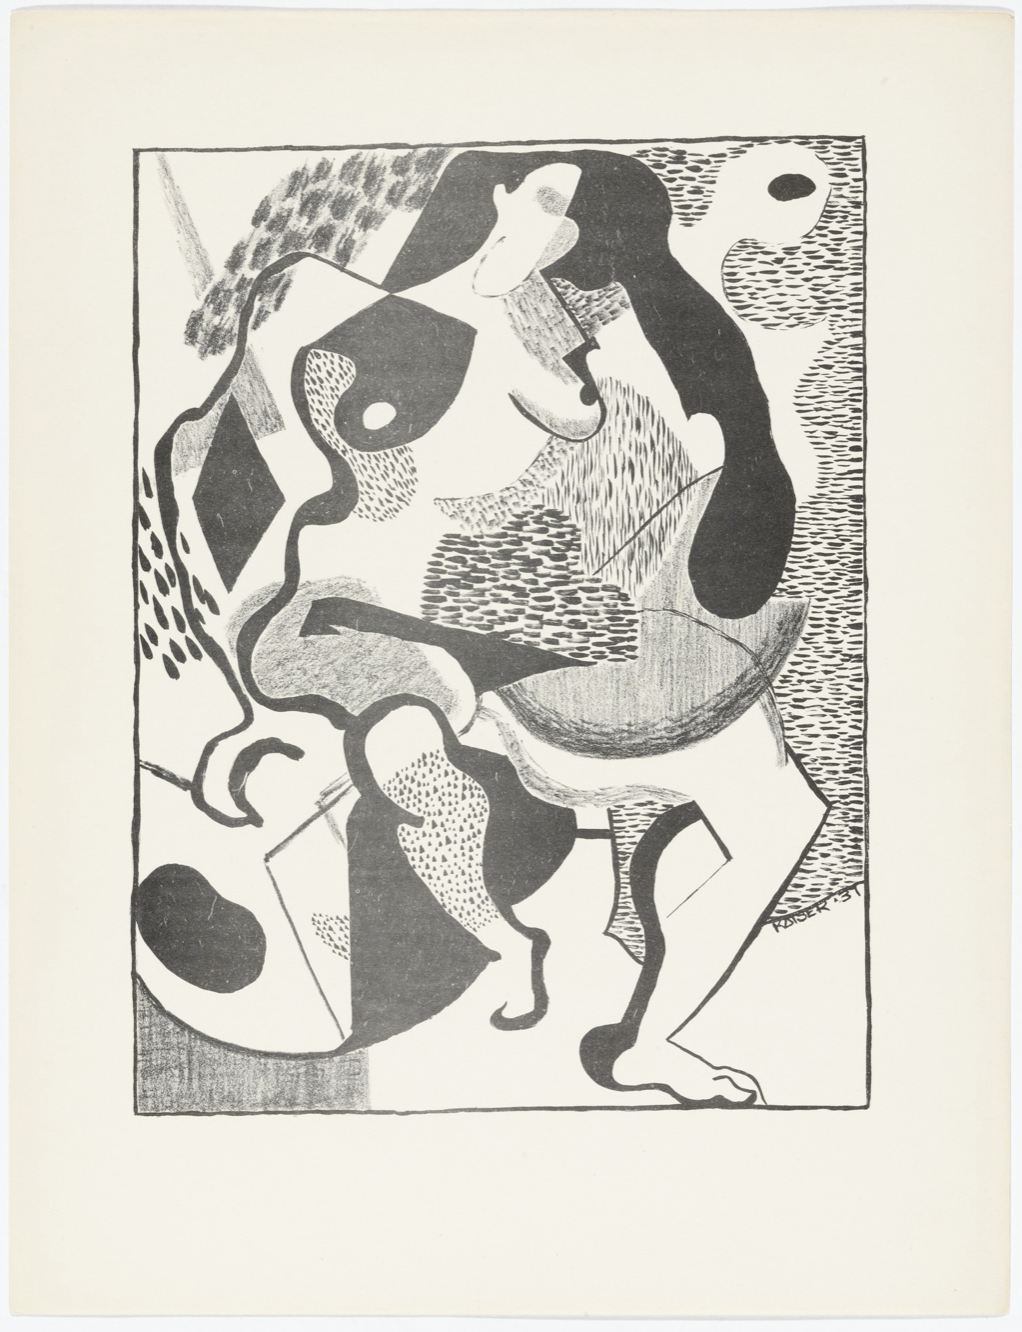 Ray Eames, Untitled from American Abstract Artists, photo courtesy of the Museum of Modern Art